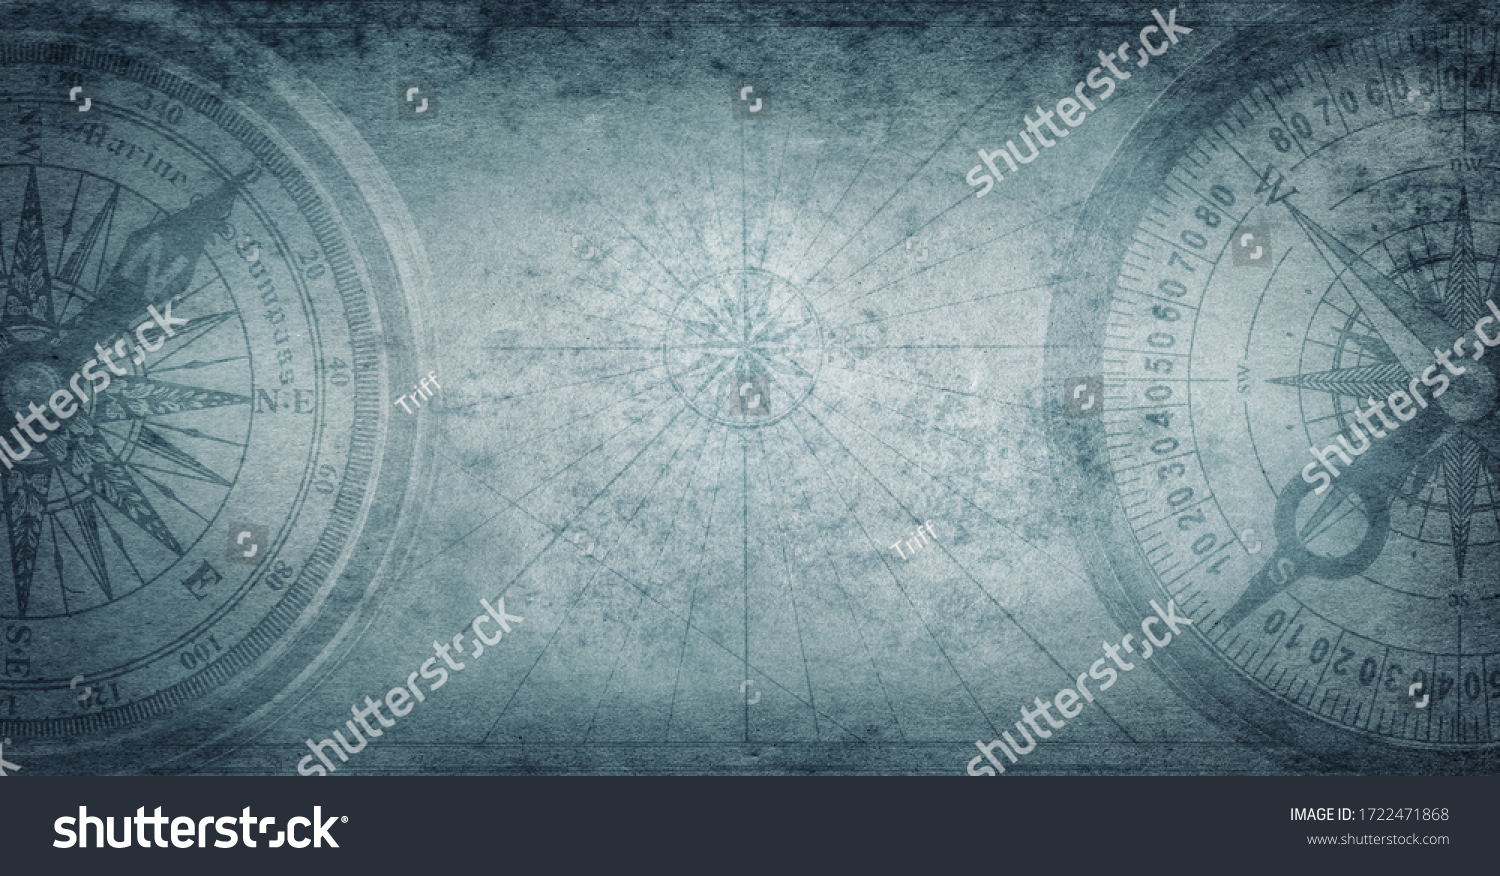 Ancient old compass on the vintage map background. Adventure, discovery, navigation, geography, education, pirate and travel theme concept background. History and geography team. Retro stale. #1722471868